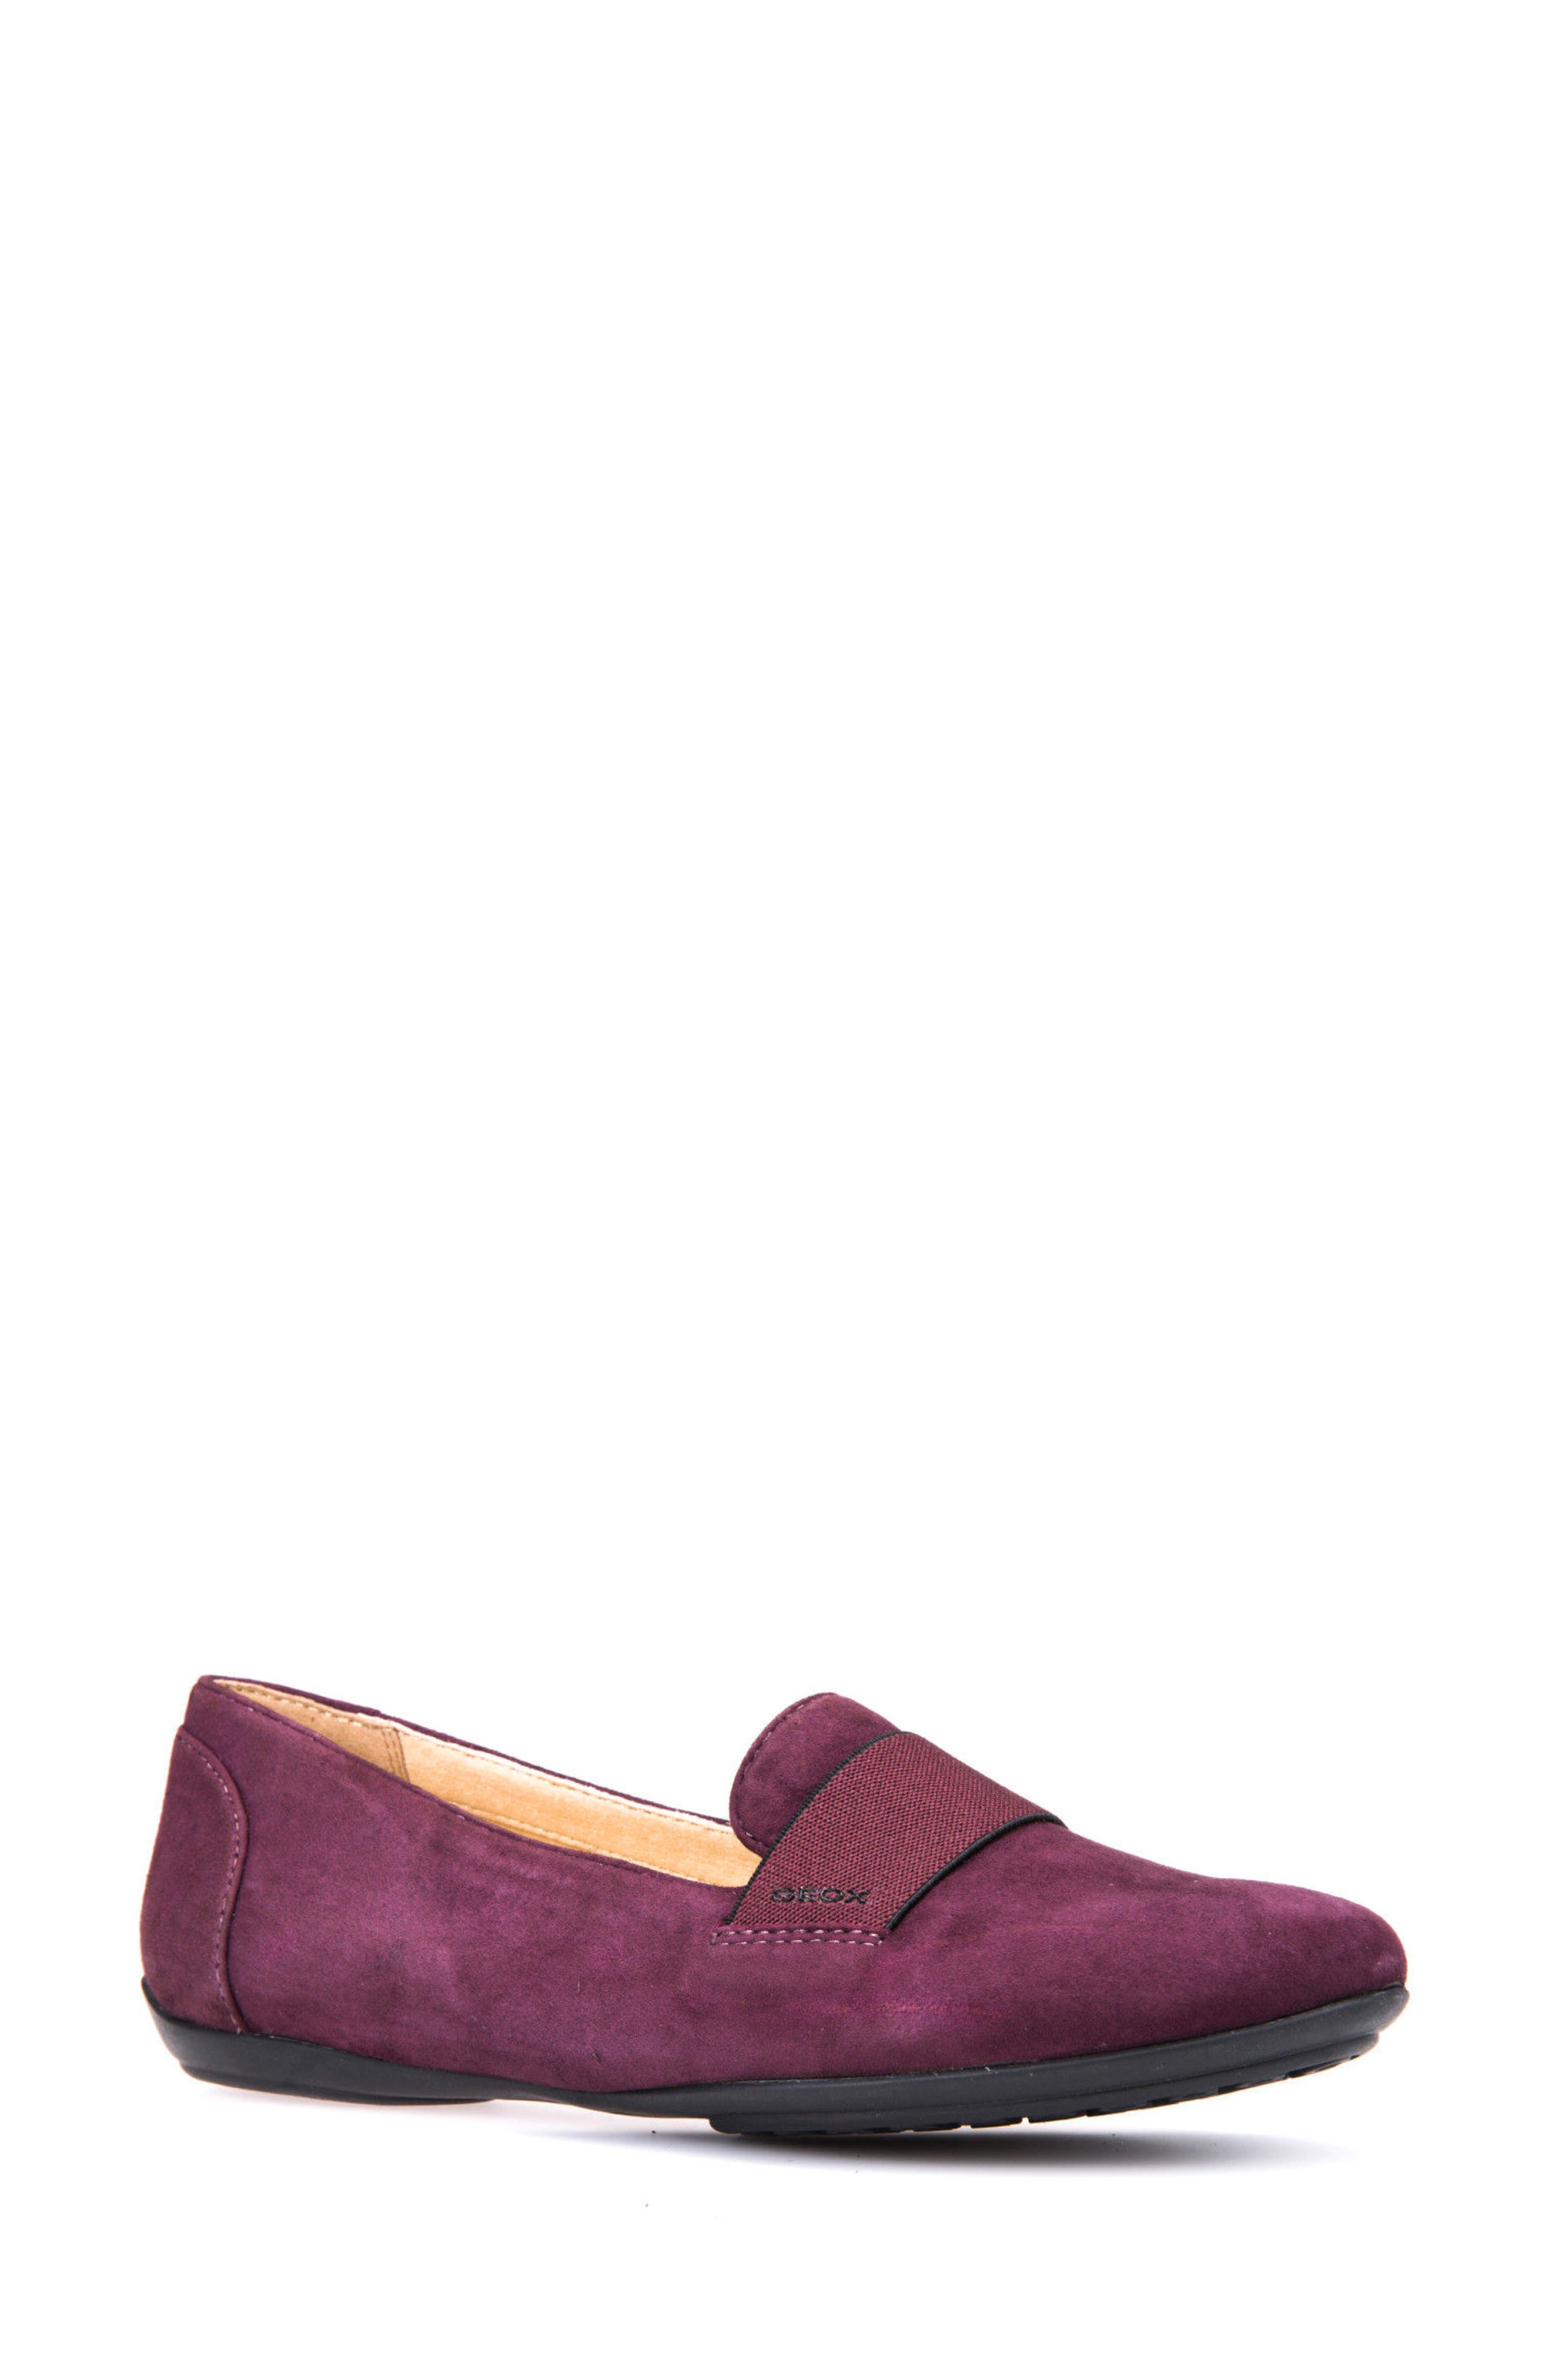 Charlene 17 Flat,                             Main thumbnail 1, color,                             Prune Leather